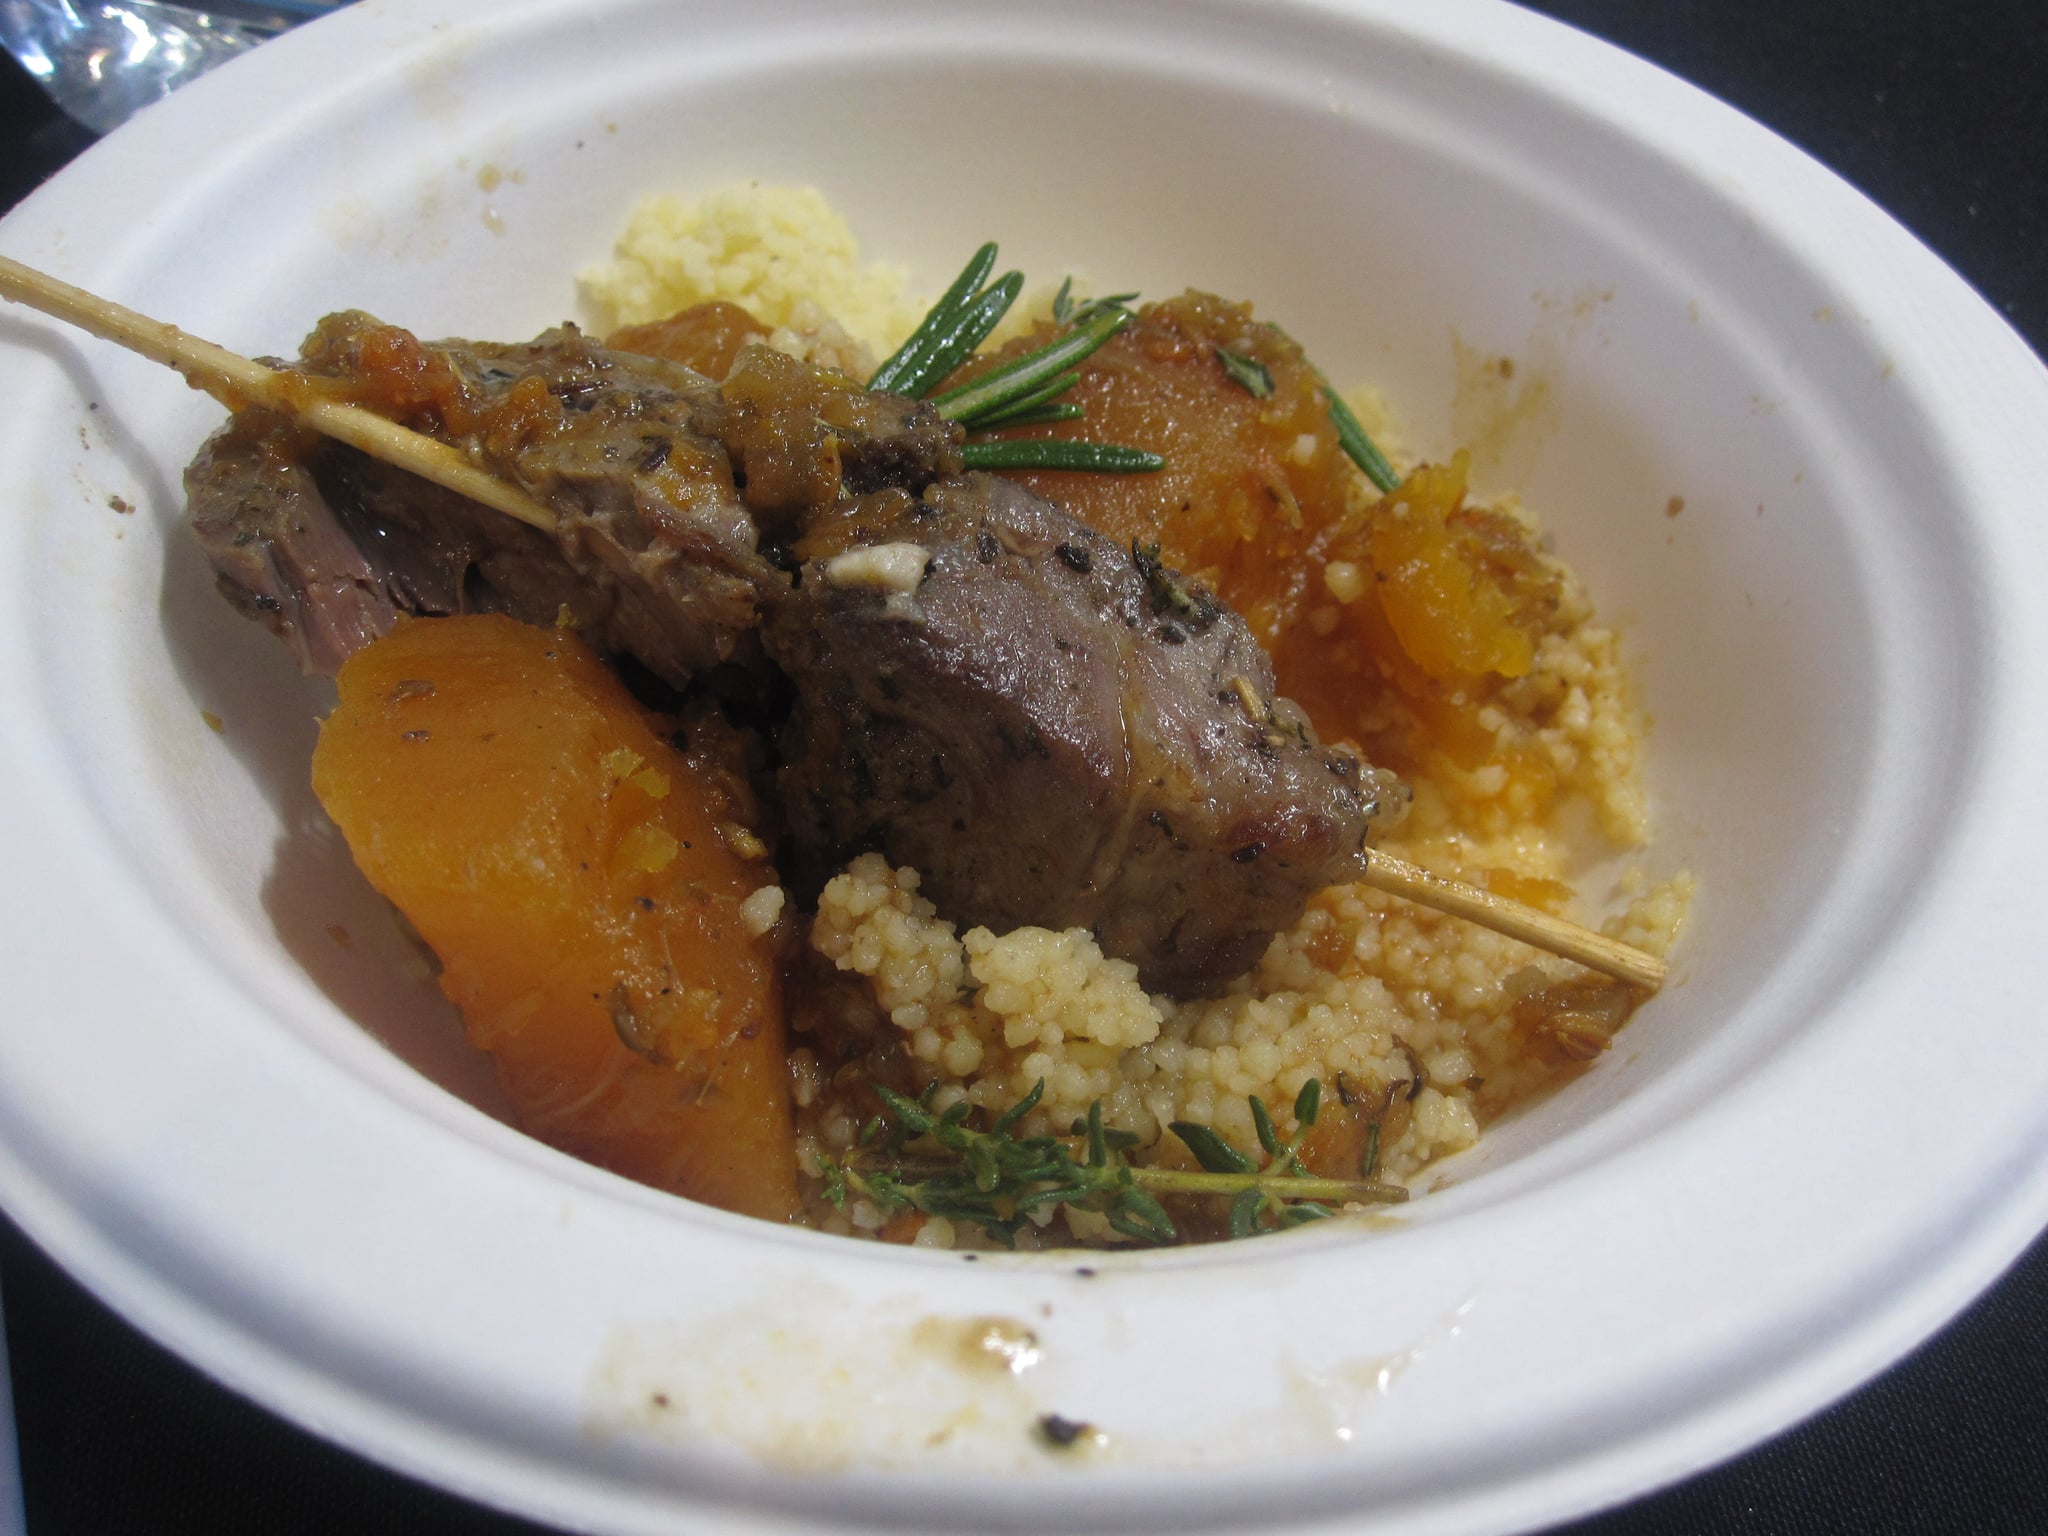 """Lamb couscous royale"" was perhaps my least favorite preparation of the event. The lamb lacked flavor and was tough."